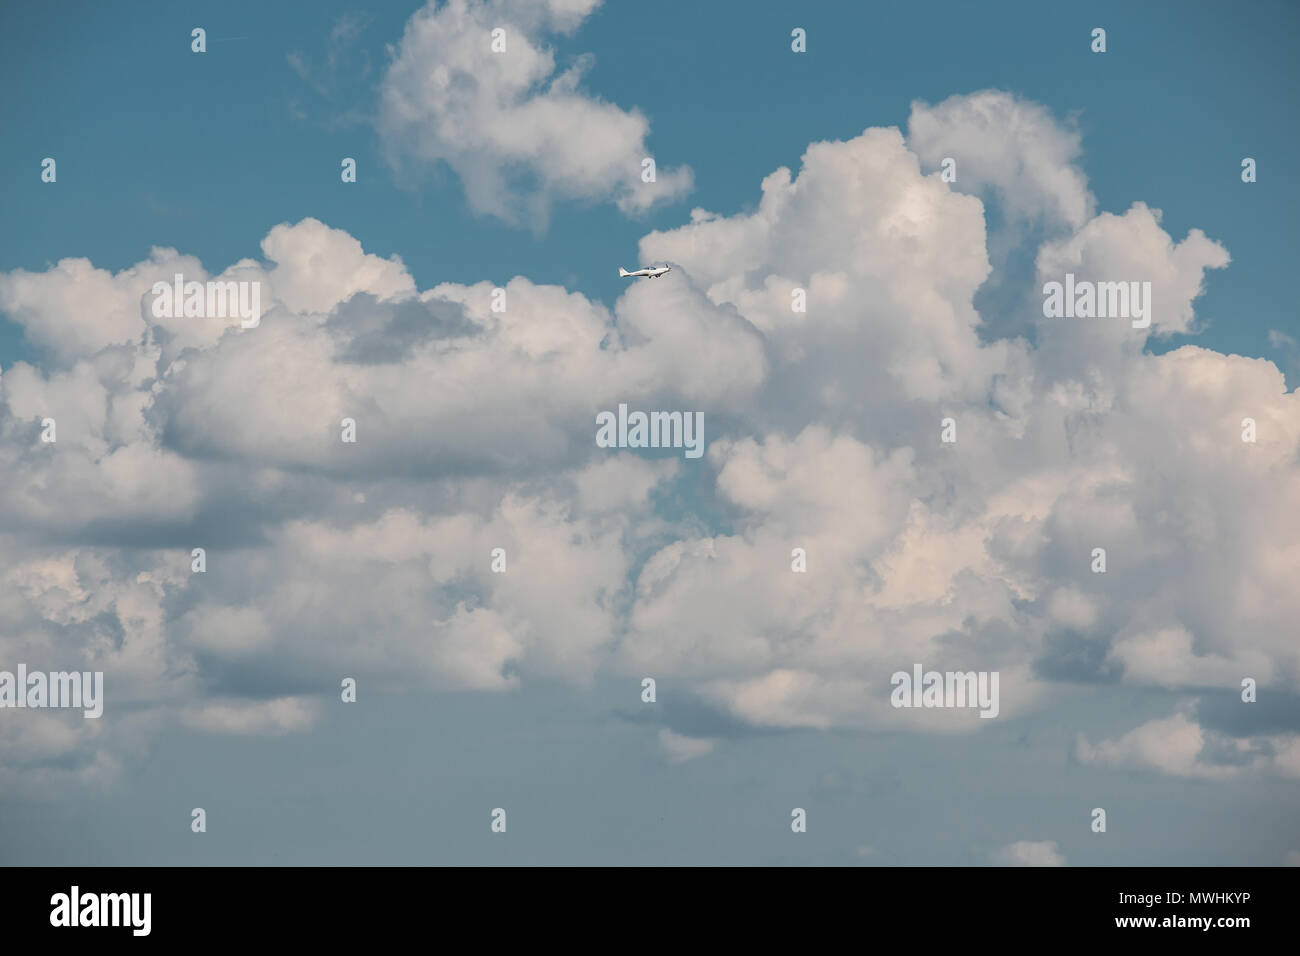 Little plane approaching into the blue Germany sky with white clouds - Stock Image